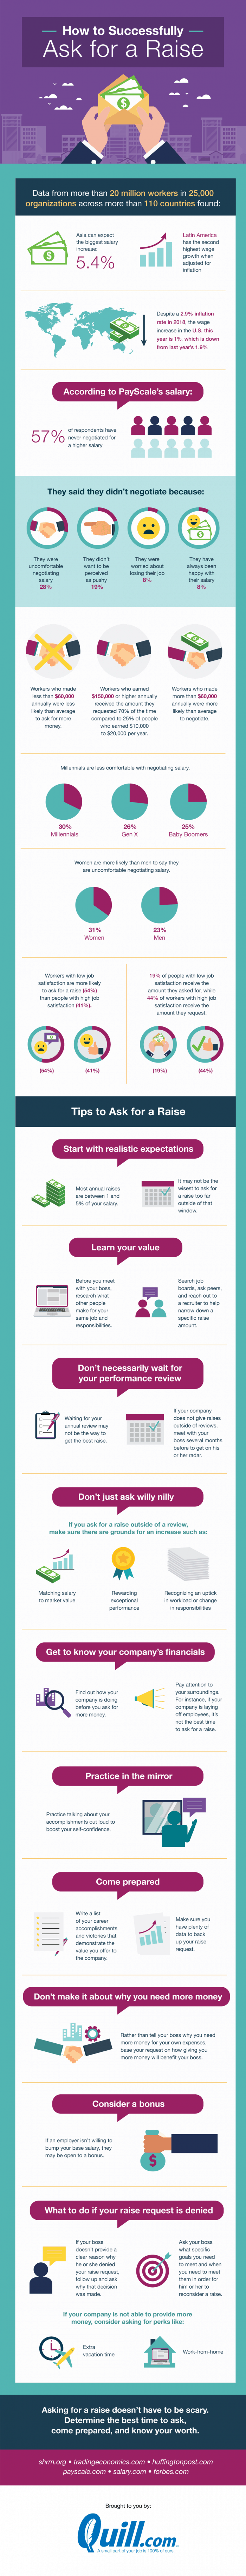 Tips to follow when you are asking for a raise